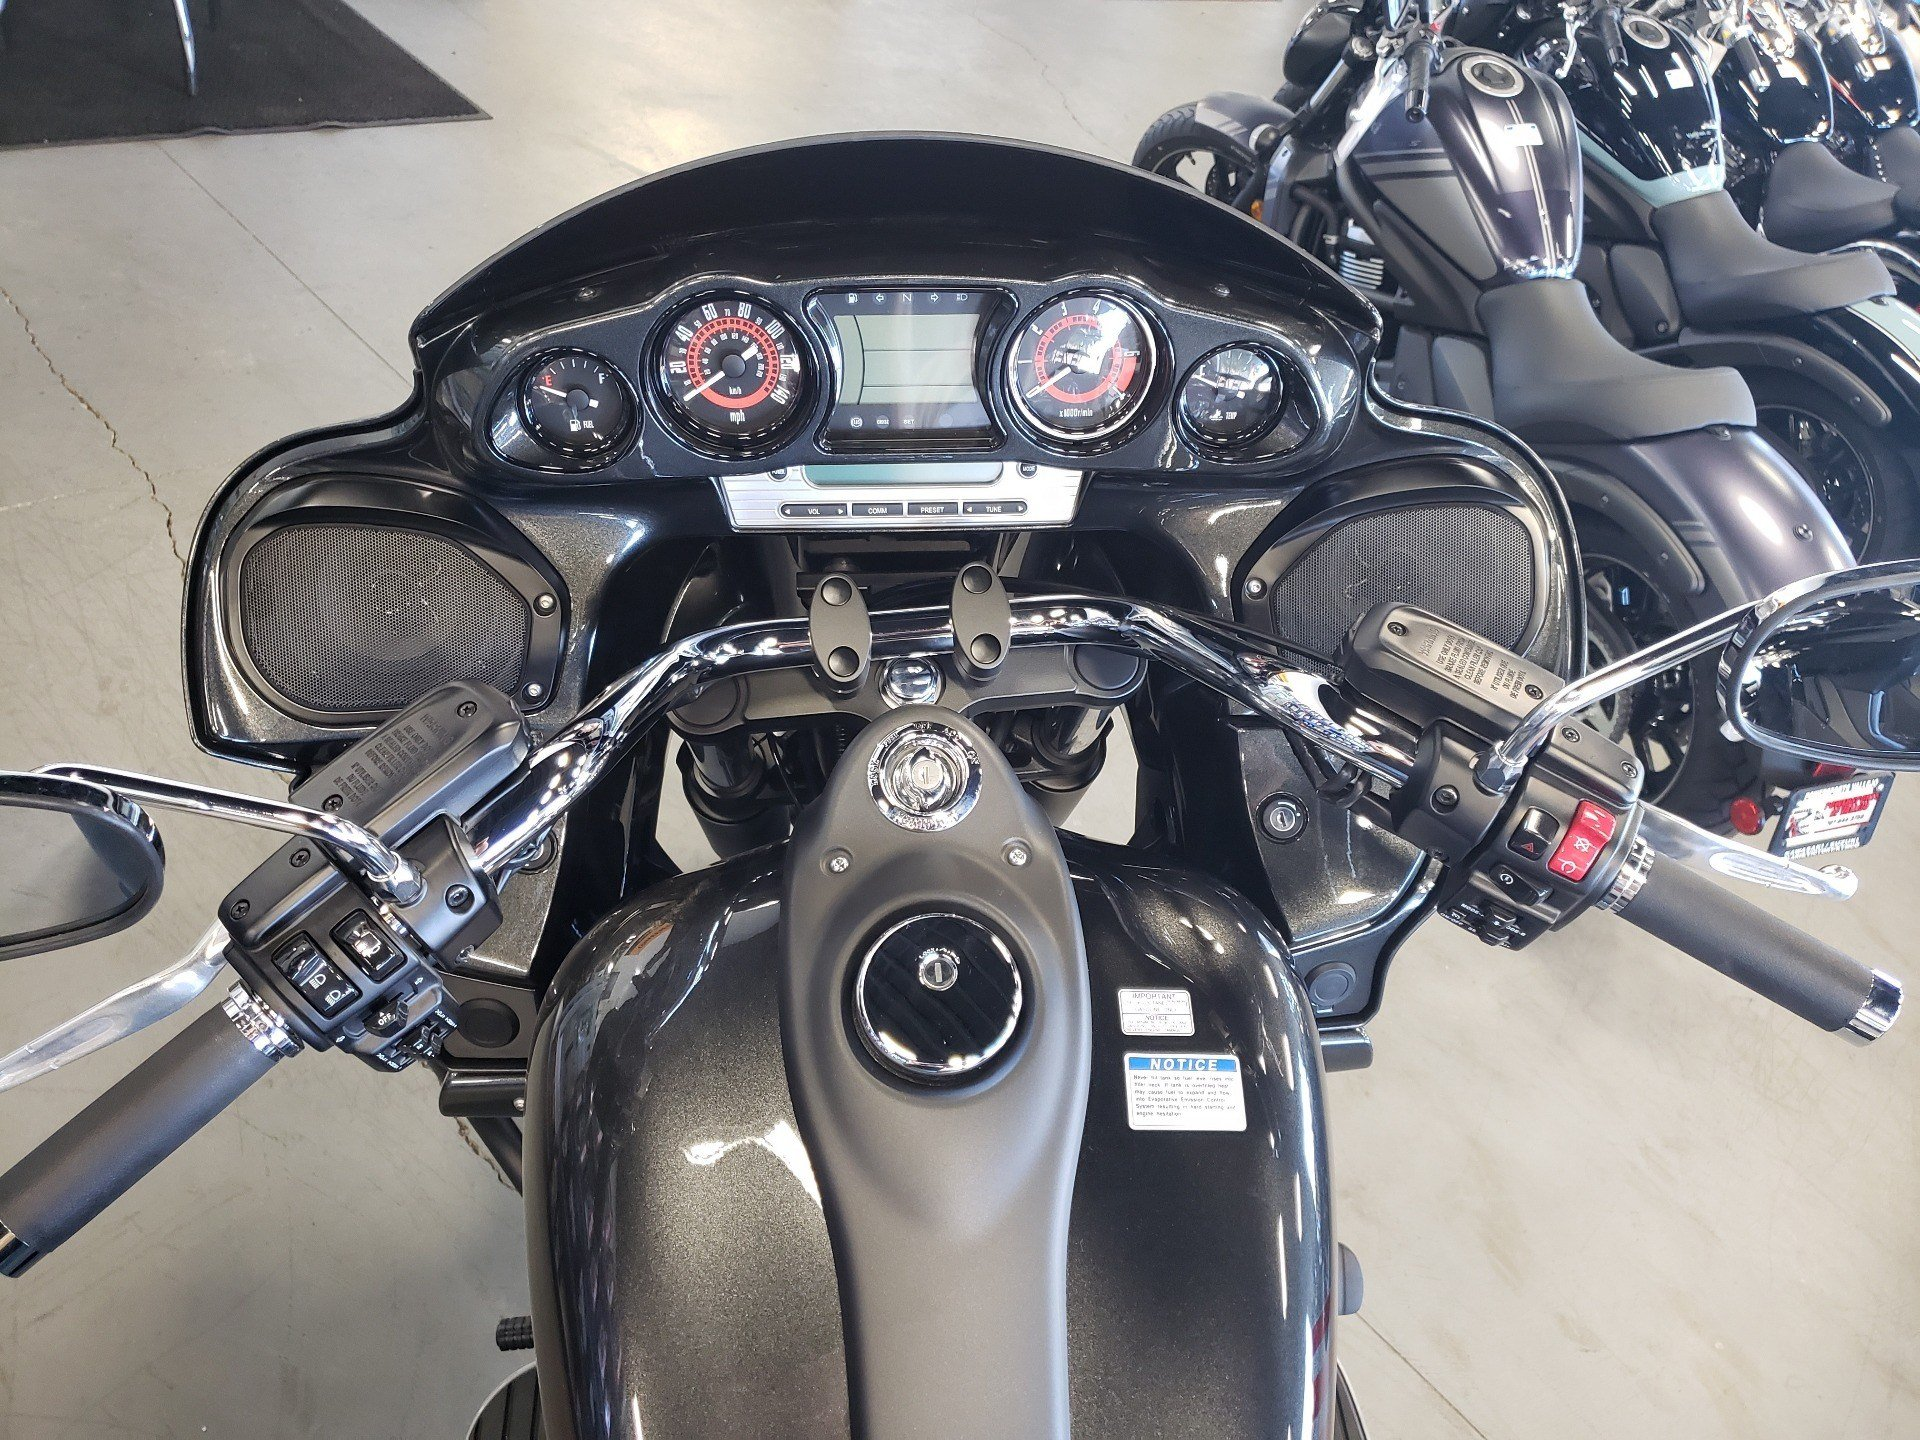 2021 Kawasaki Vulcan 1700 Vaquero ABS in Vallejo, California - Photo 6